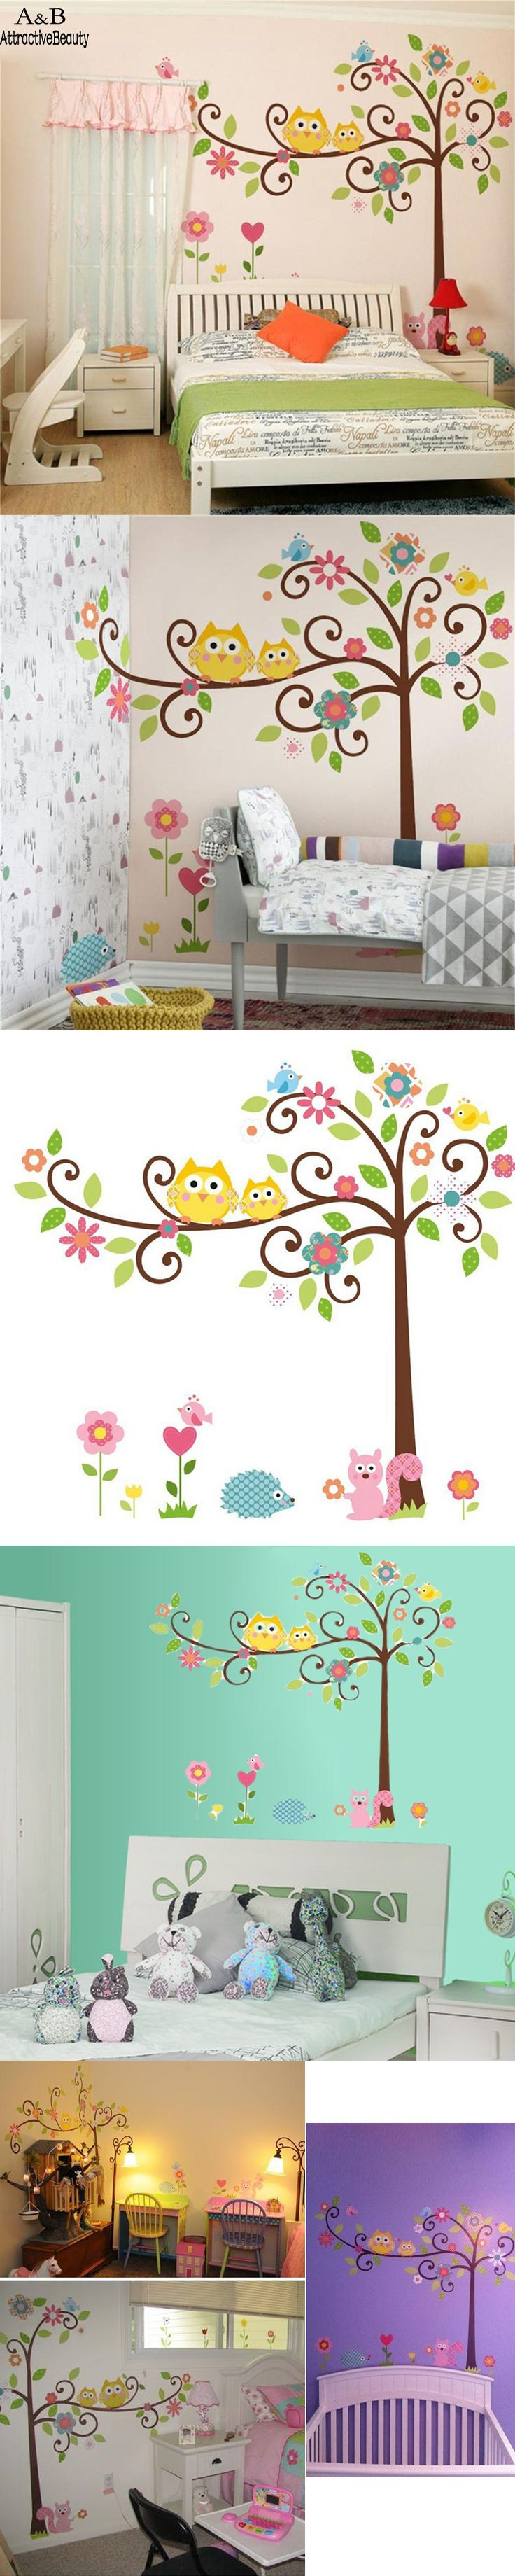 25+ unique Handmade wall stickers ideas on Pinterest   Tree mural ...